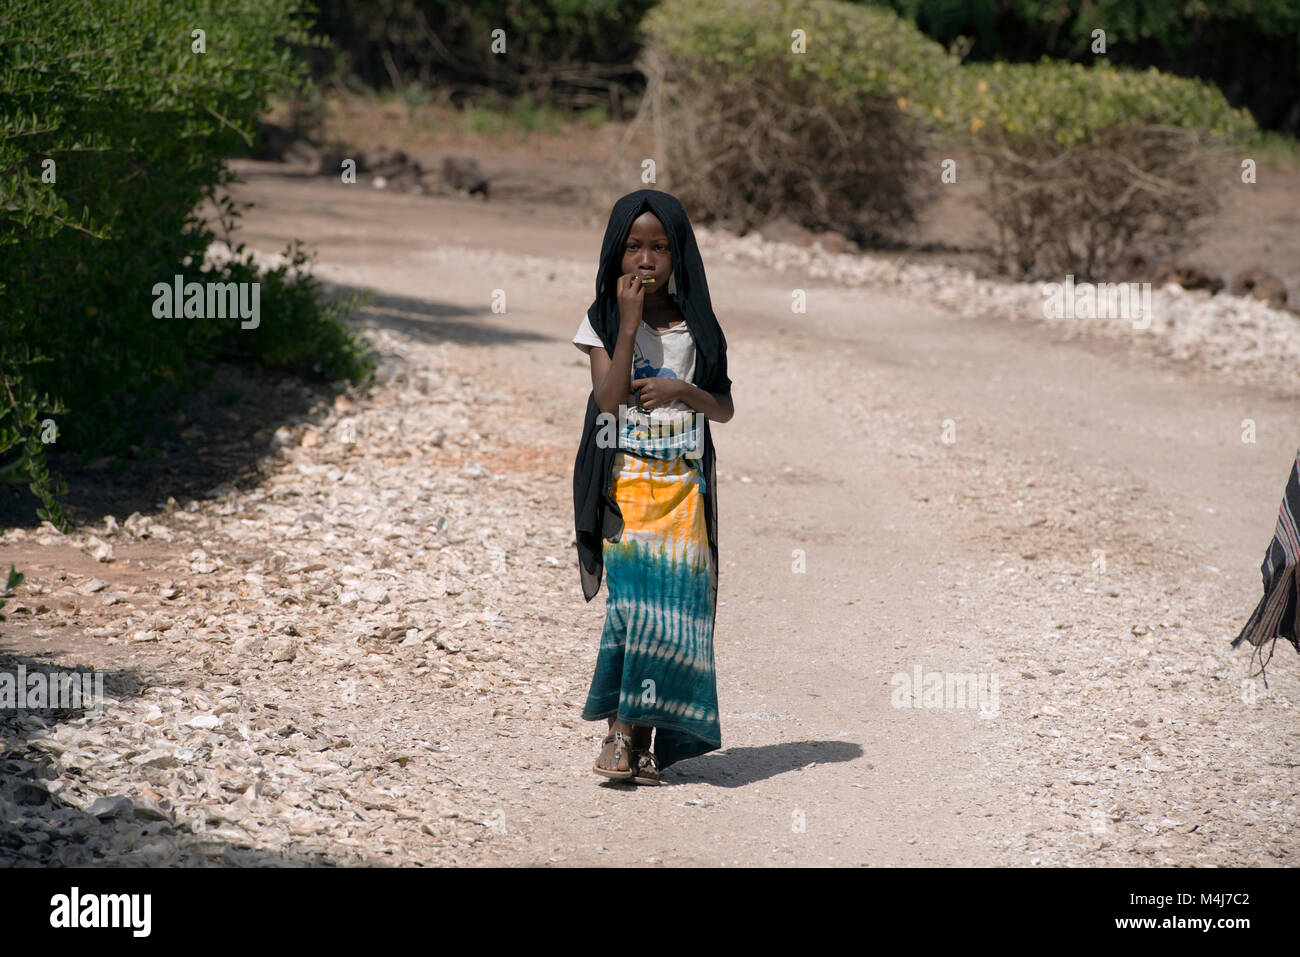 A young Mandingo (Mandinka) tribe girl walking through her village in The Gambia, West Africa. - Stock Image